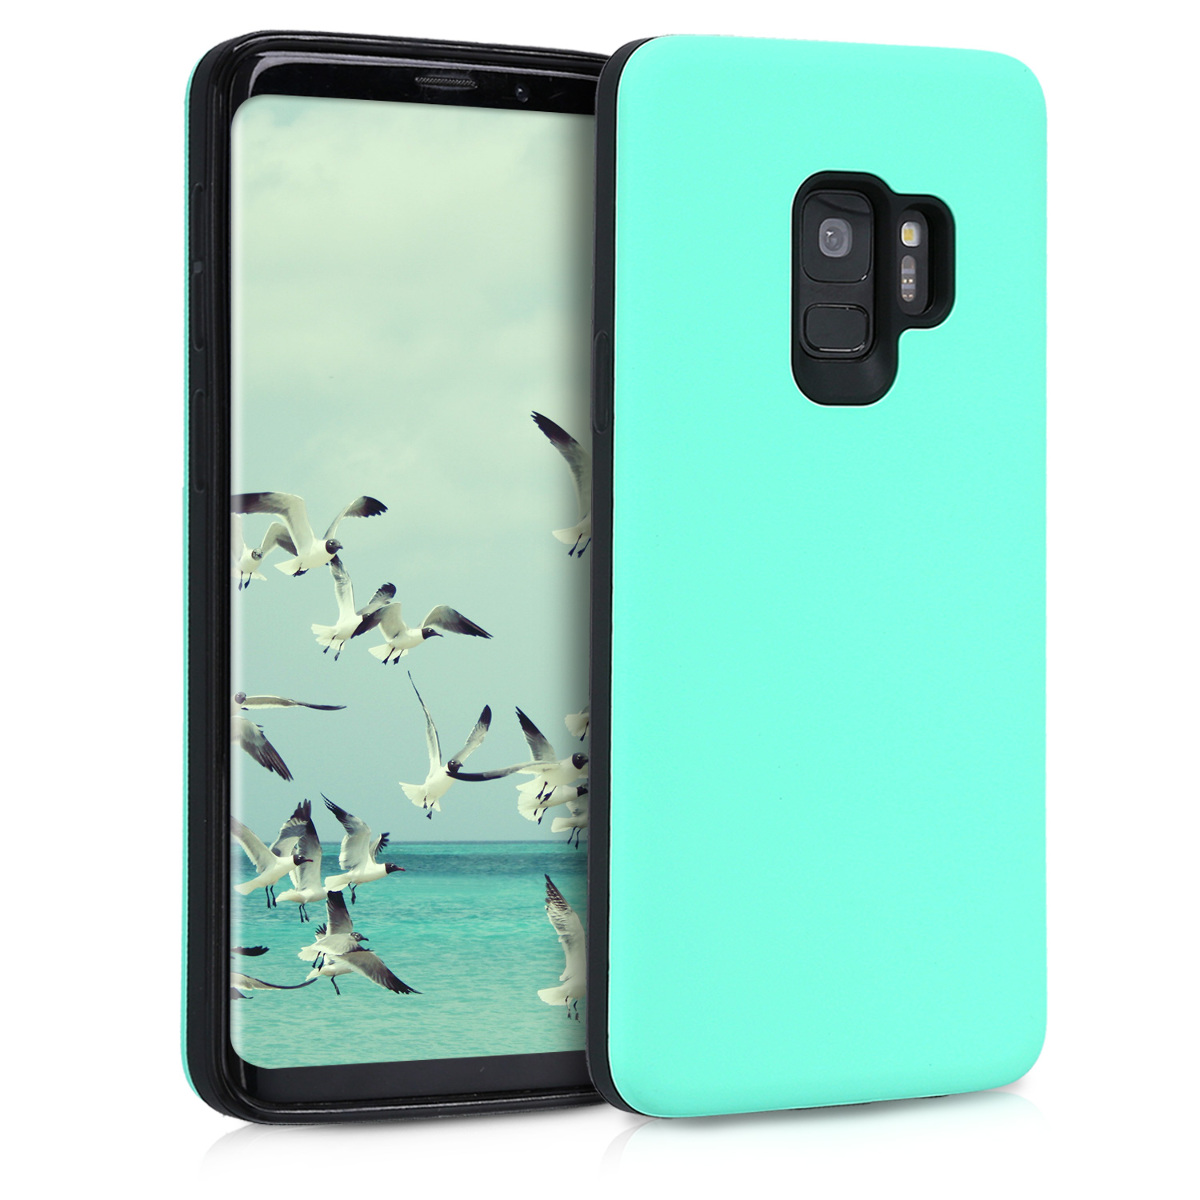 Full ArmorPouzdro pro Samsung Galaxy S9 - Heavy Duty Shockproof Protective Hybrid Case Cover - Mint